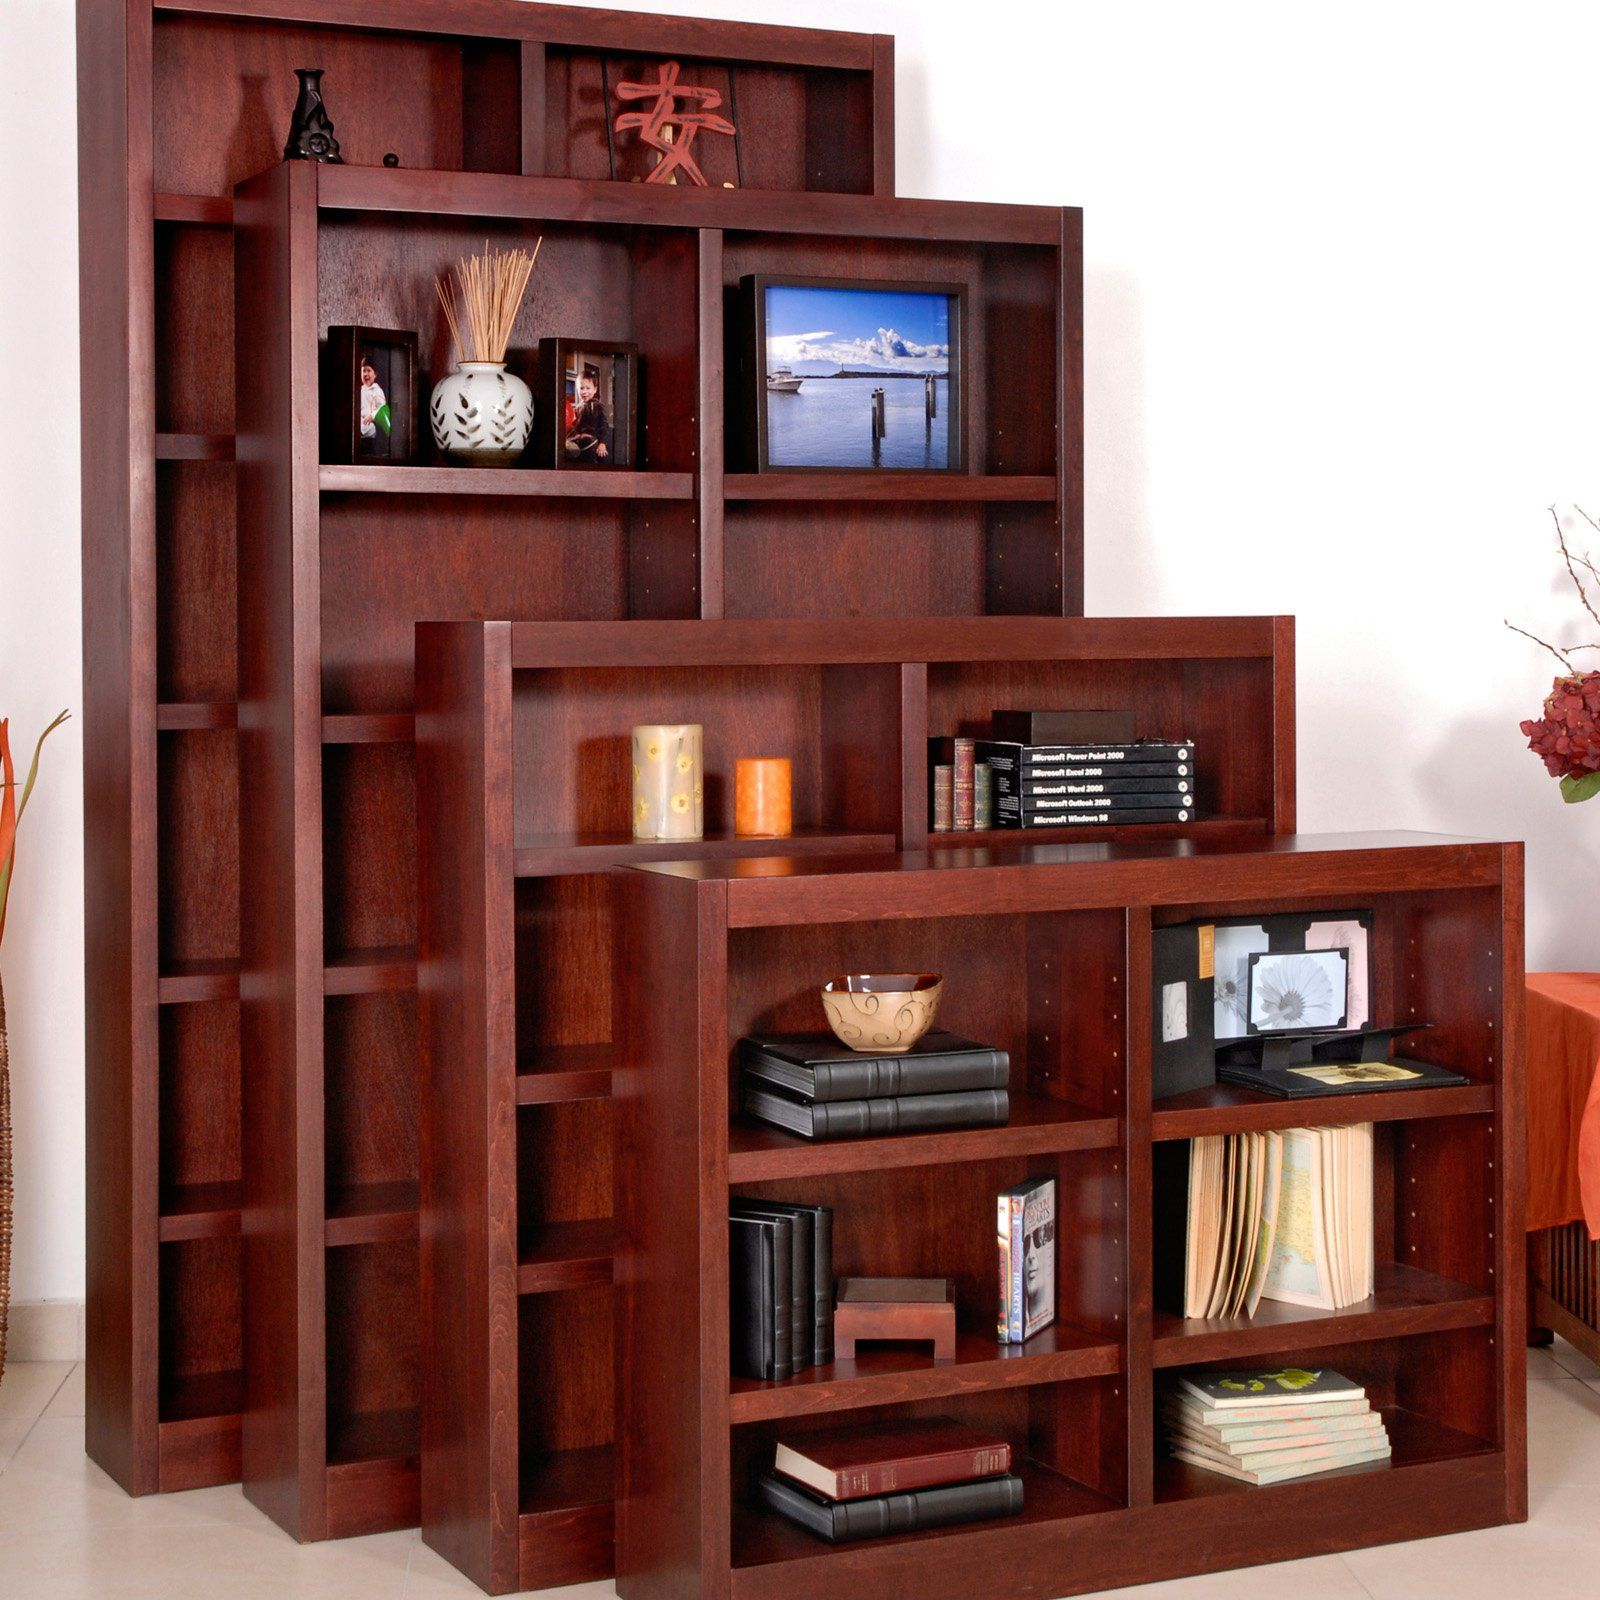 6 Foot Wide Bookcase Best Spray Paint For Wood Furniture Check More At Http